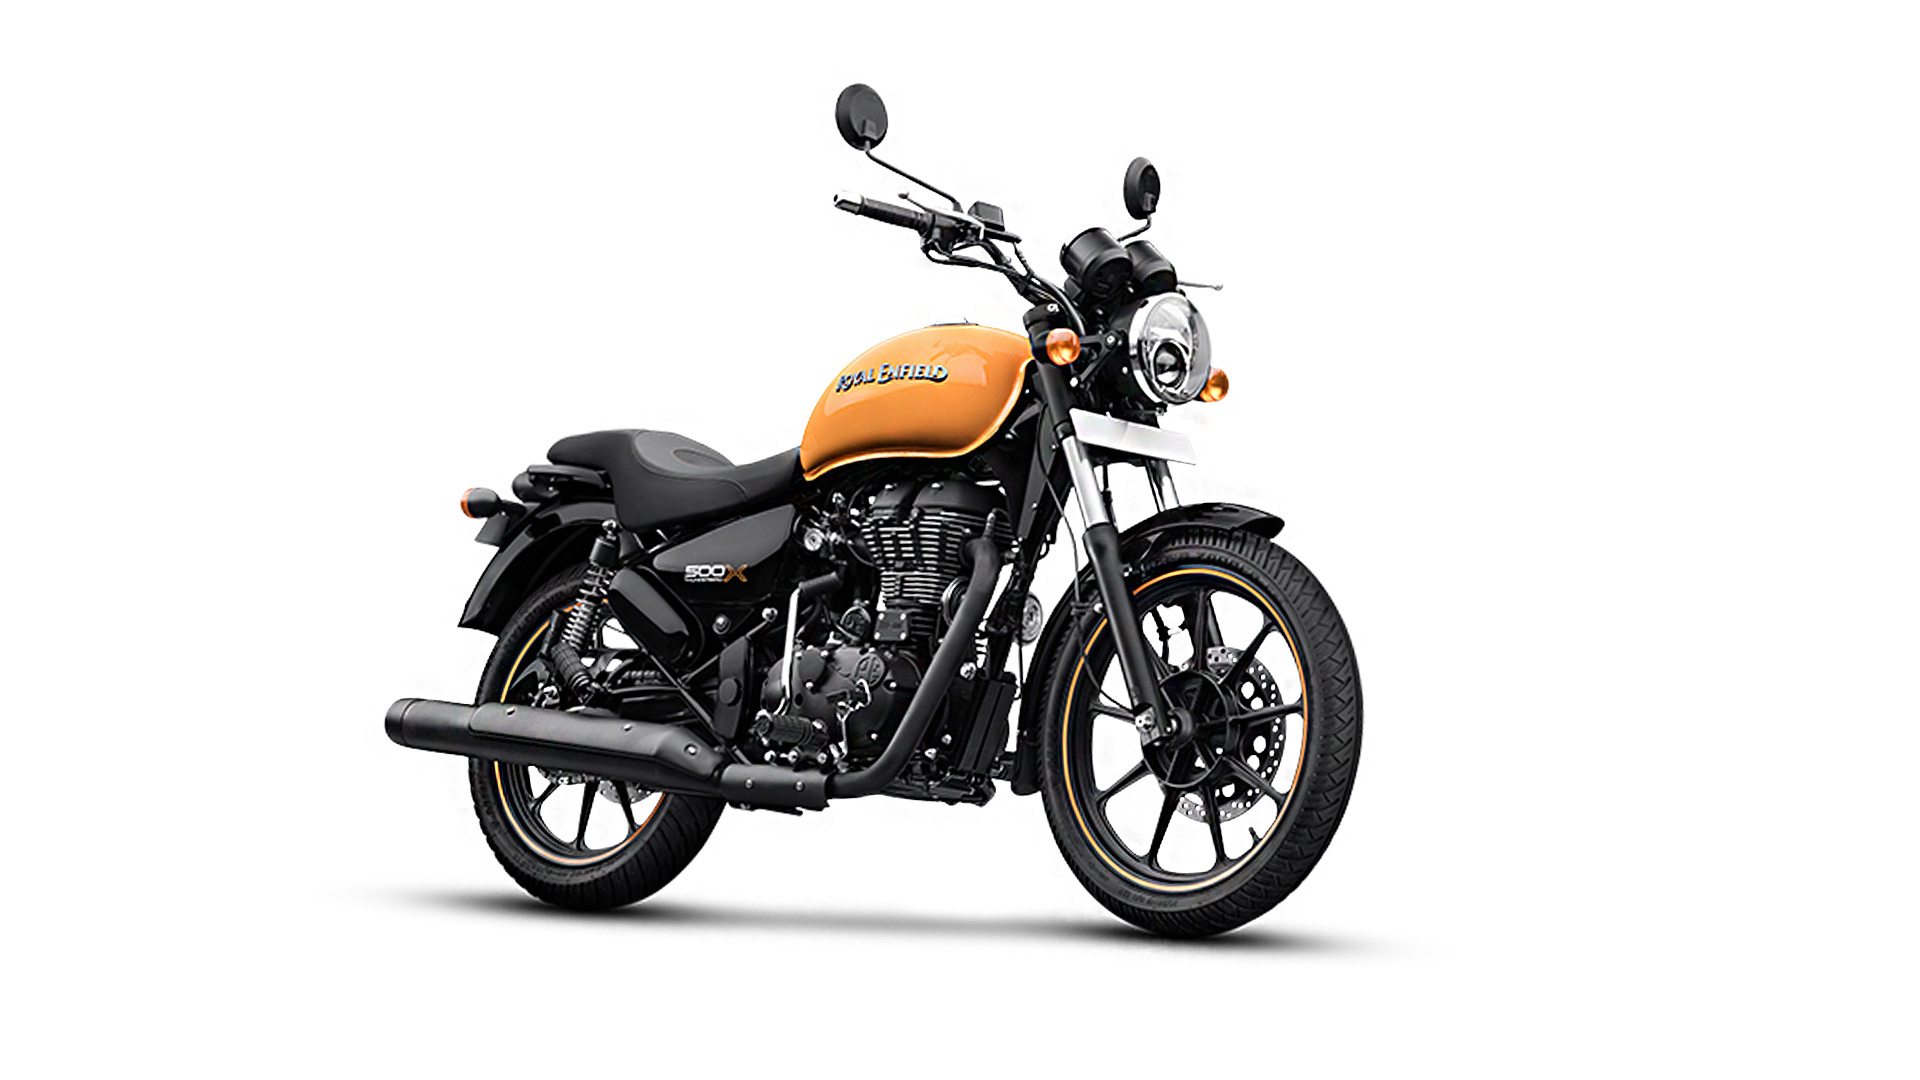 royal enfield thunderbird 500x 2018 price mileage. Black Bedroom Furniture Sets. Home Design Ideas